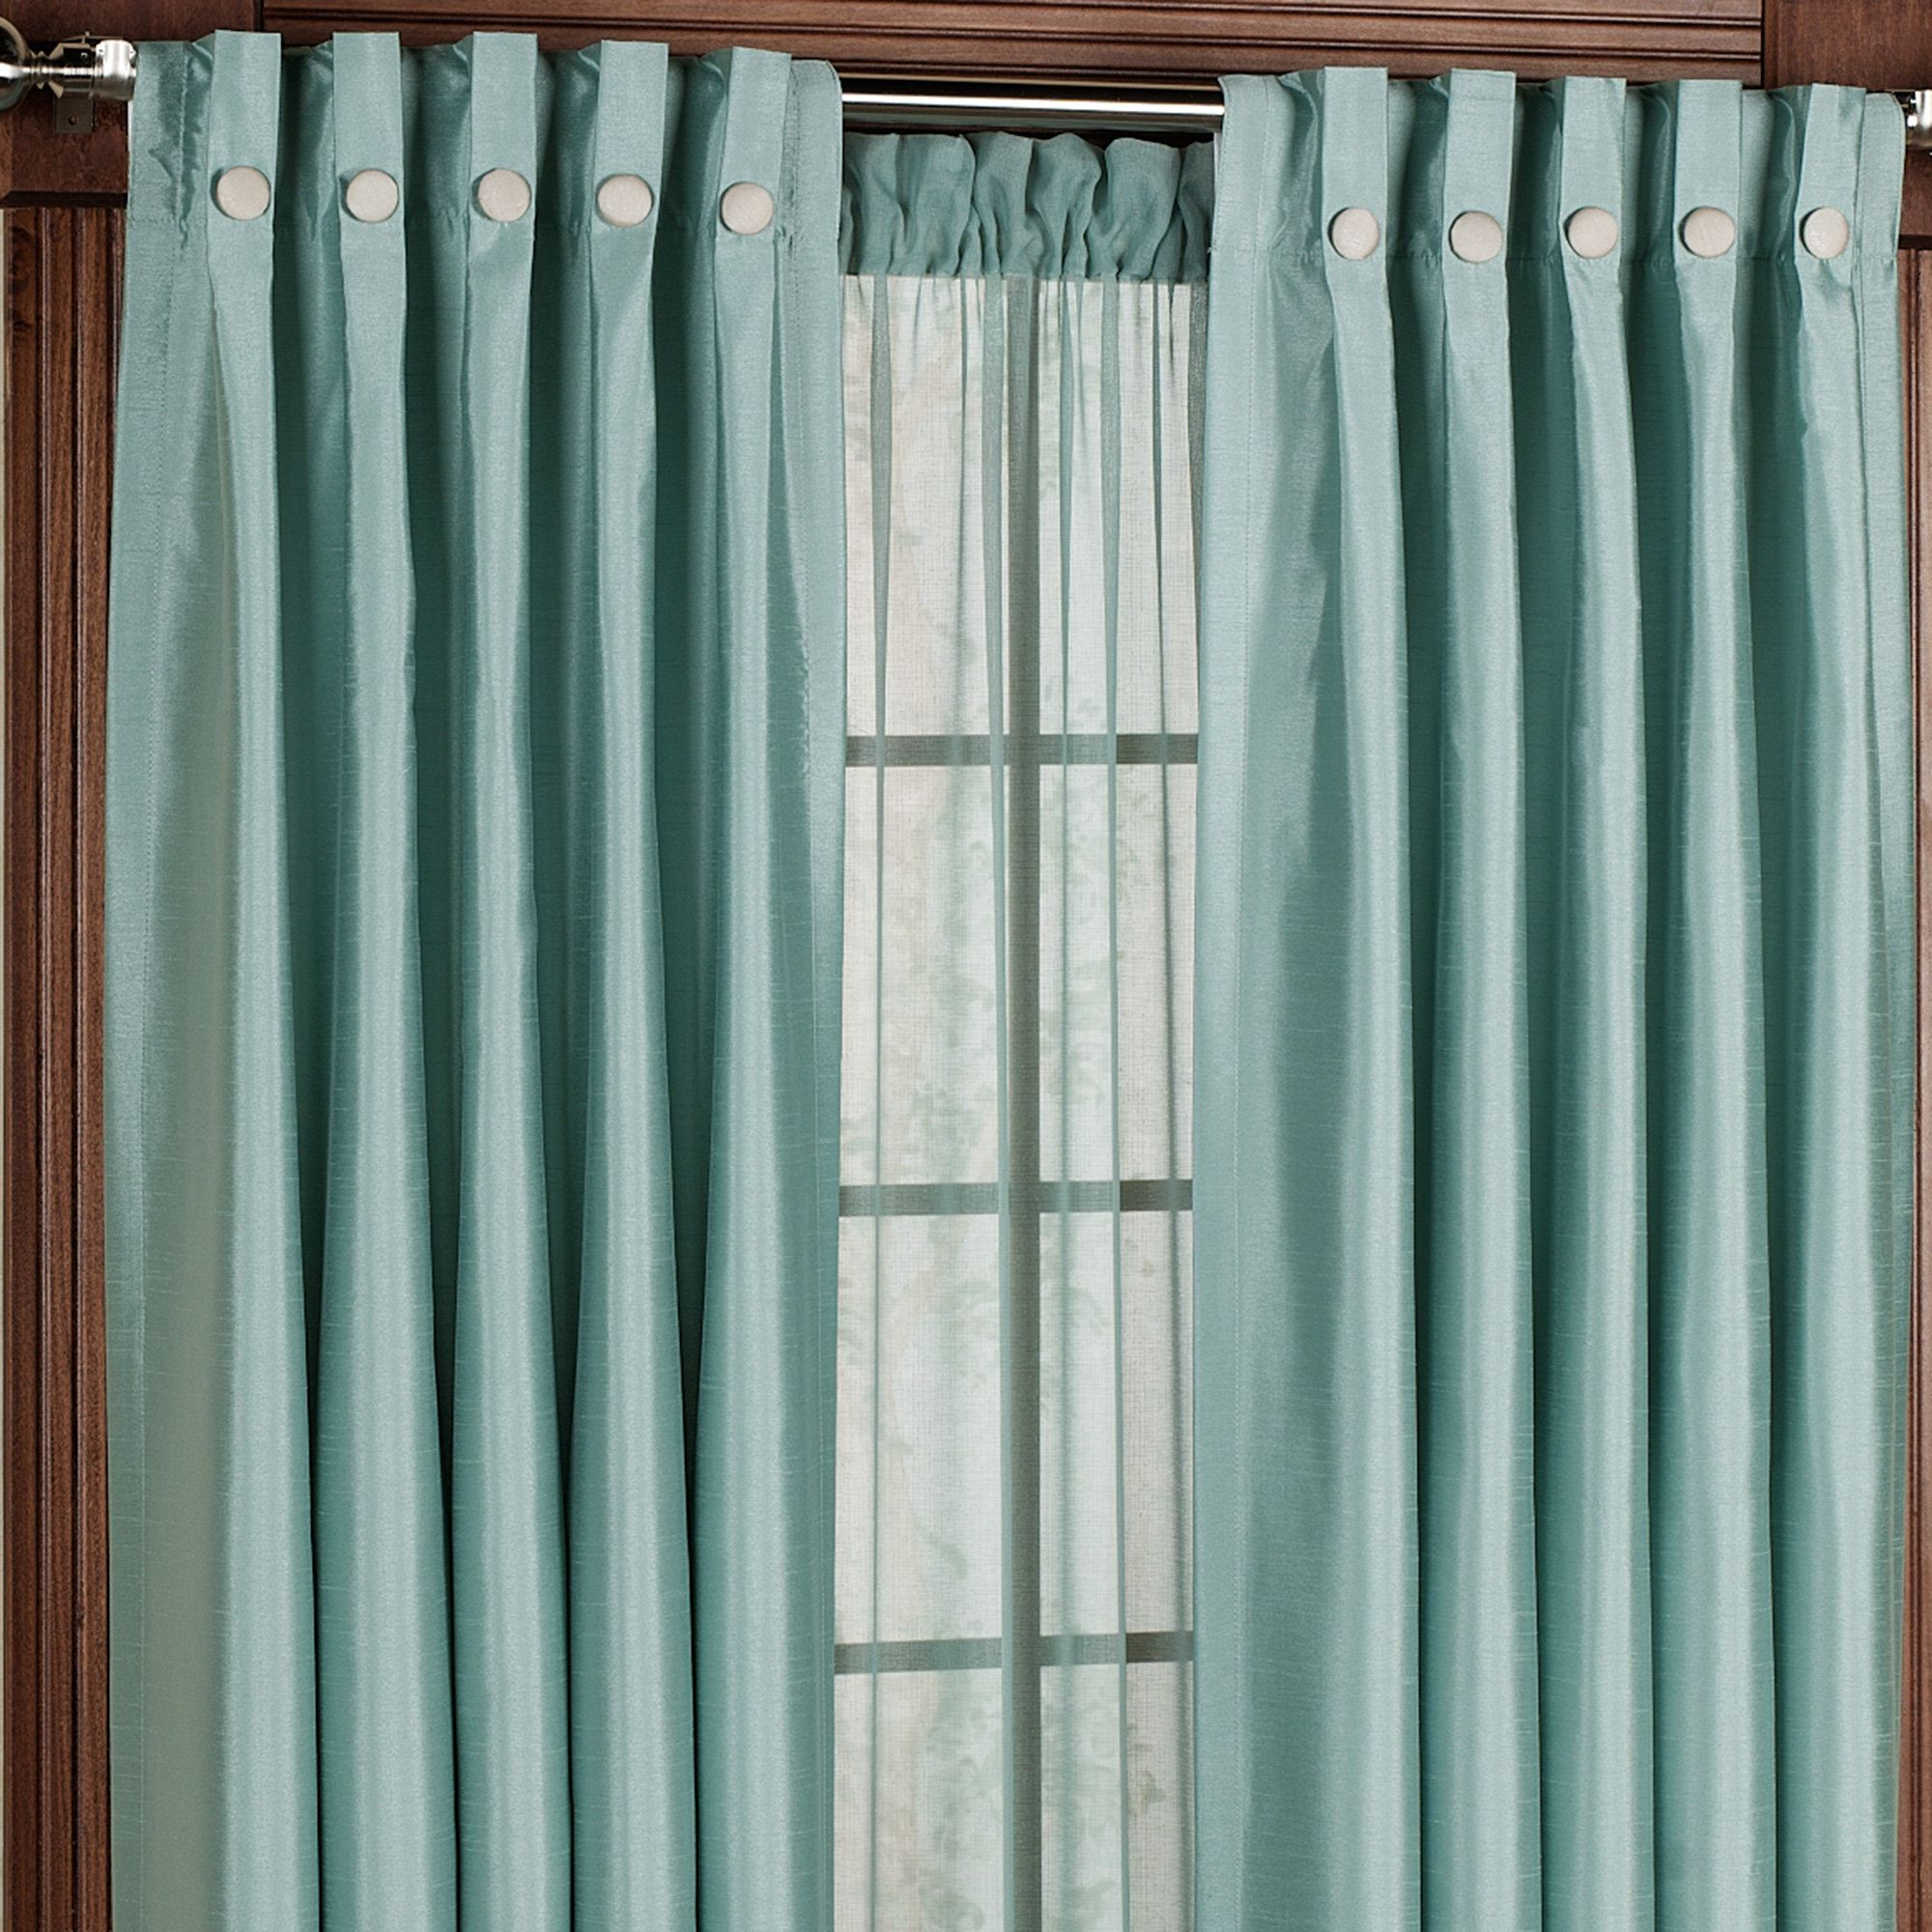 Artisan Box Pleated Curtains